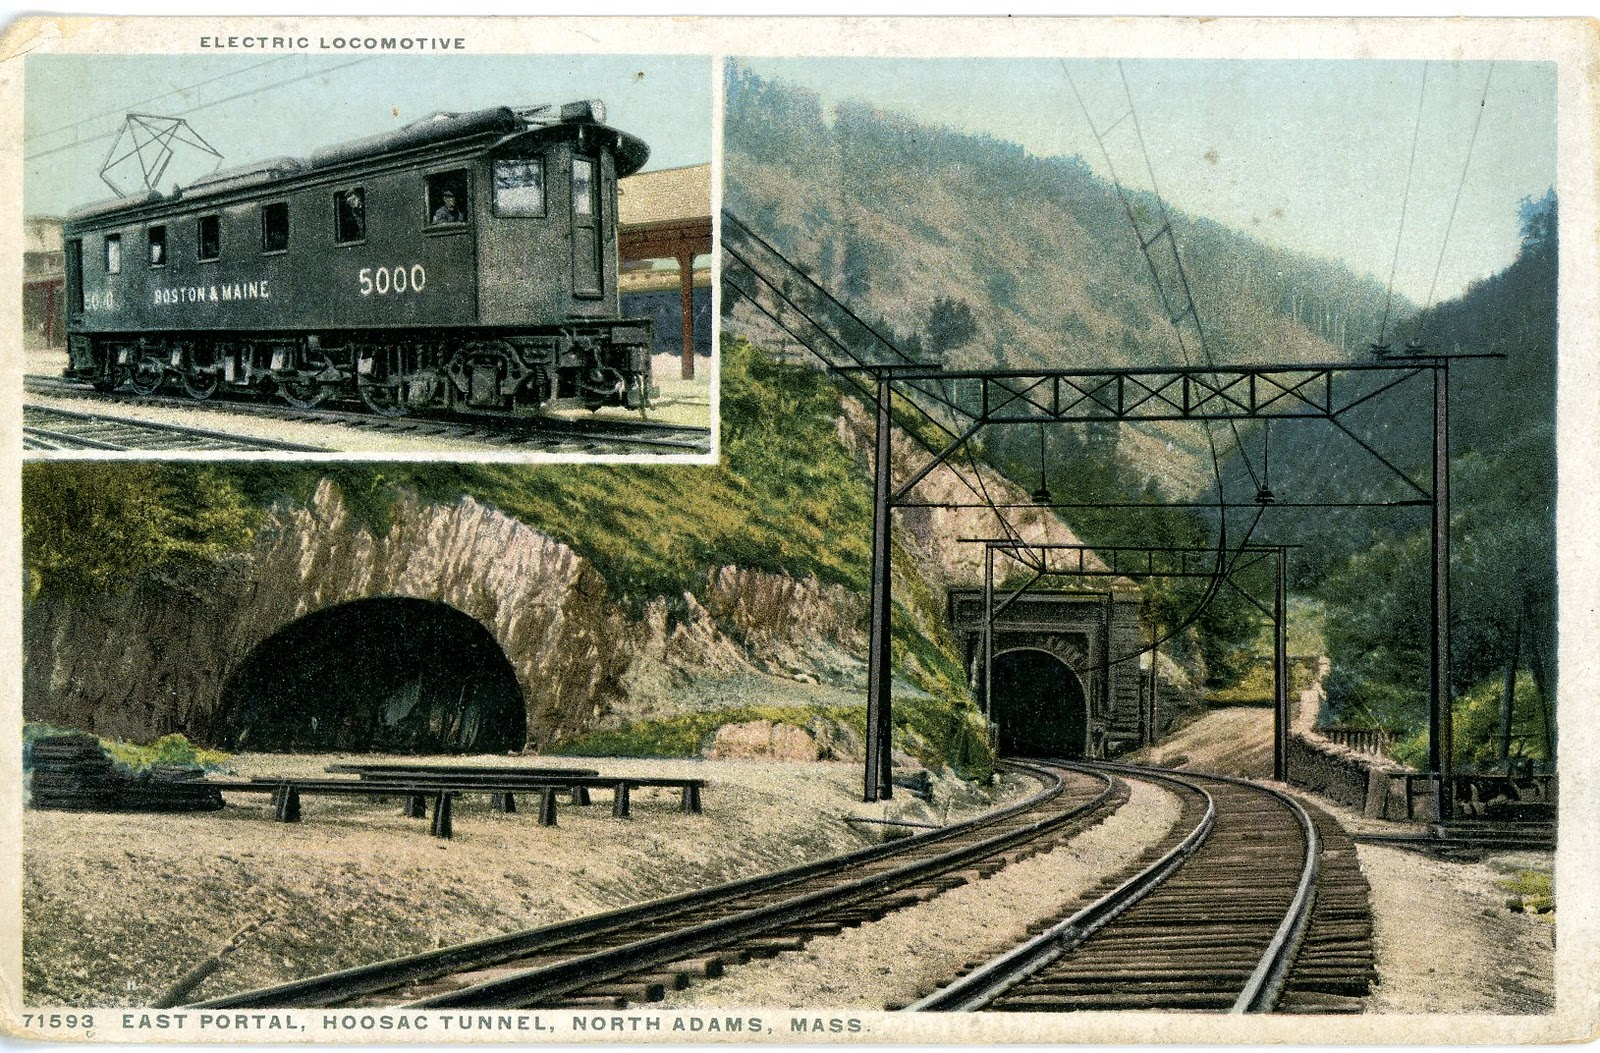 Central Maine Motors >> The National Railroad Postcard Museum: The Great Hoosac Tunnel